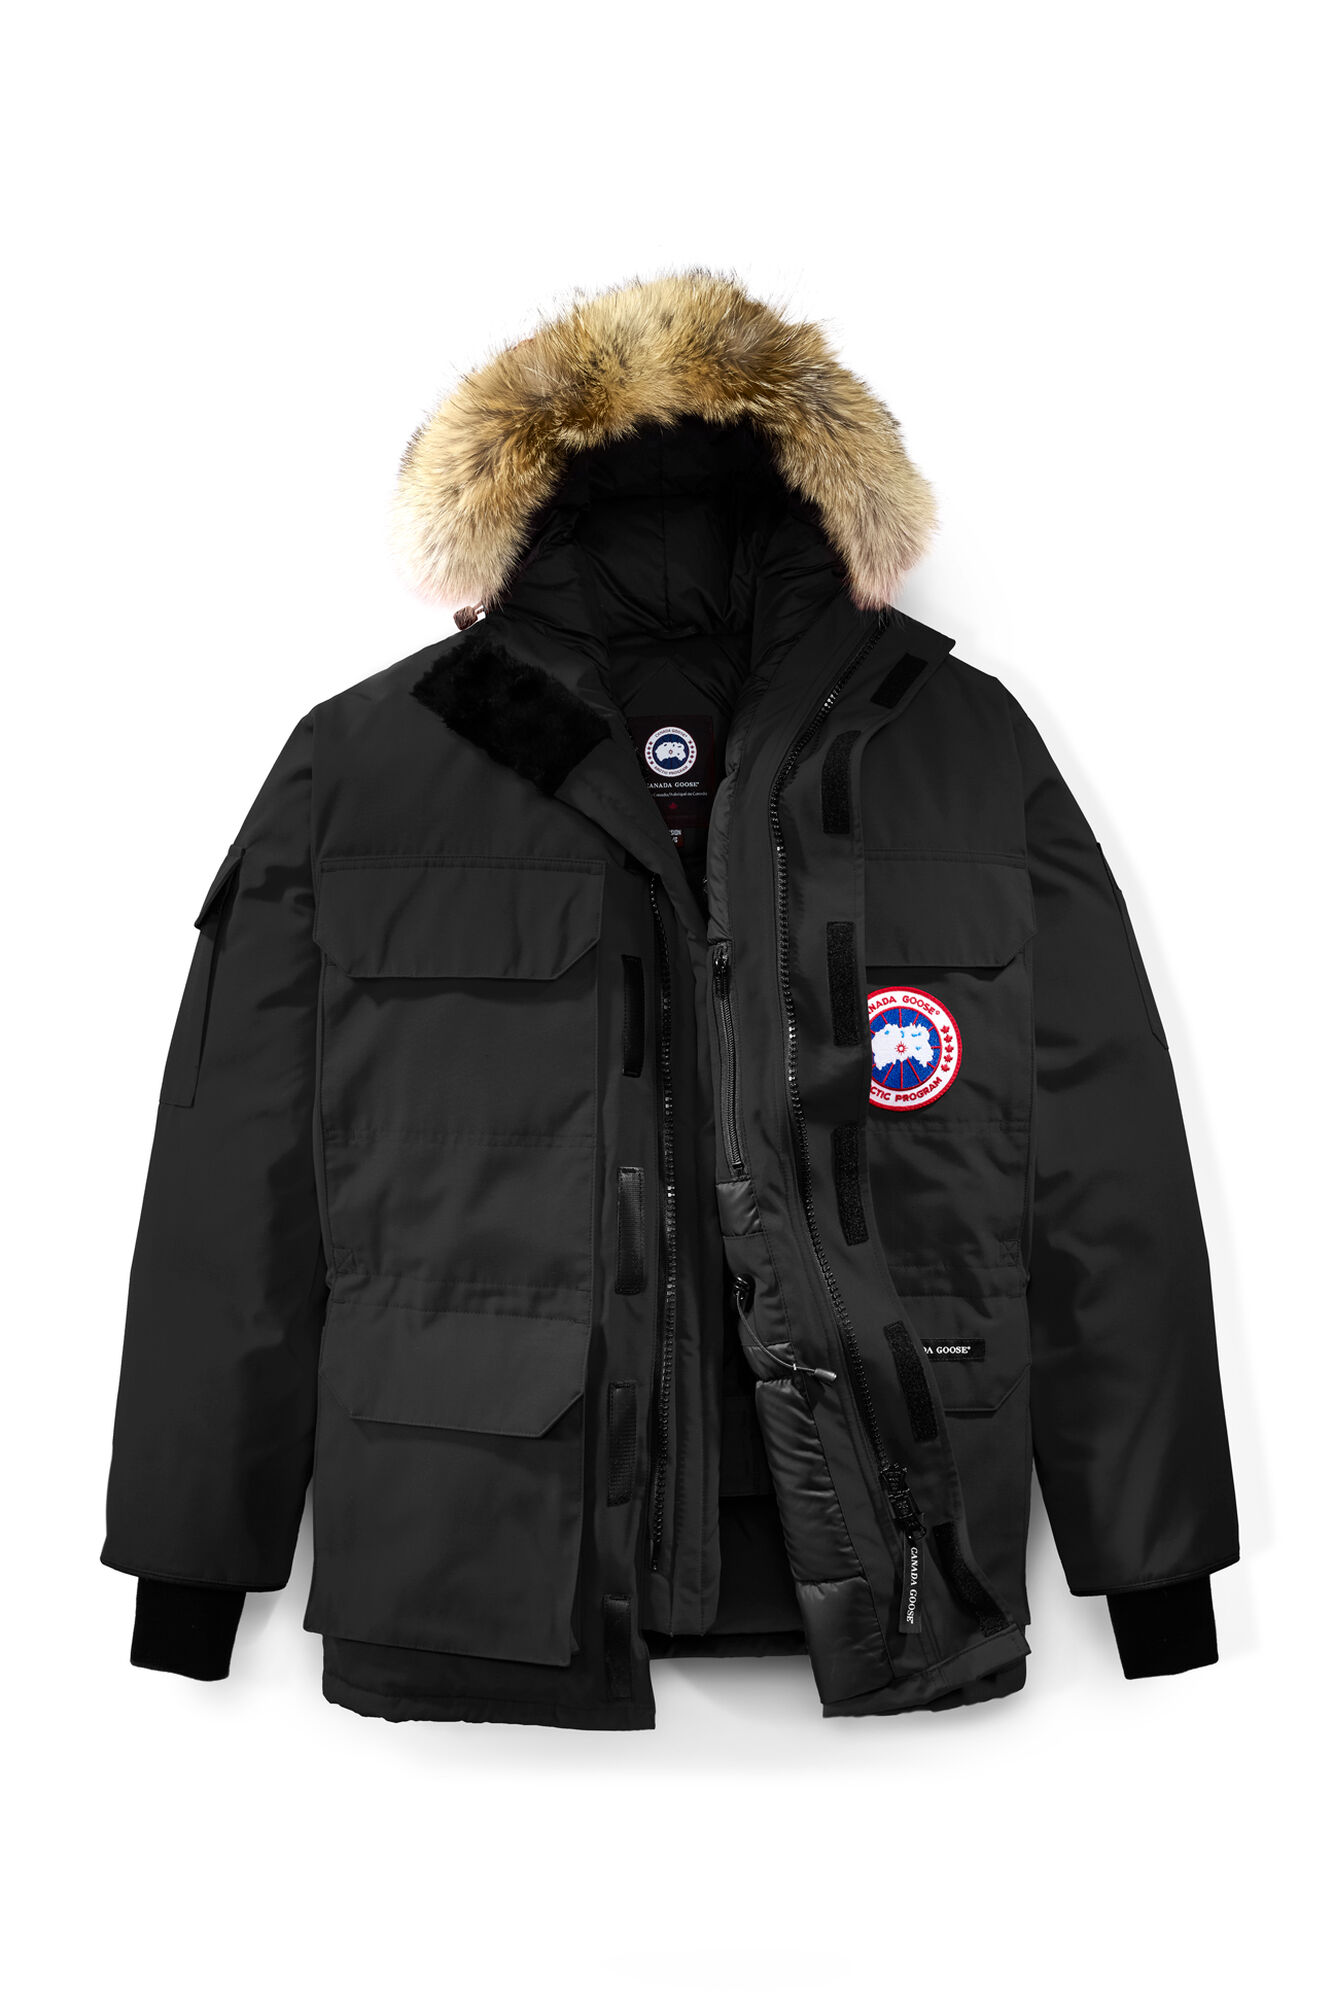 Canada Goose womens outlet official - Mens Extreme Weather Outerwear | Canada Goose?